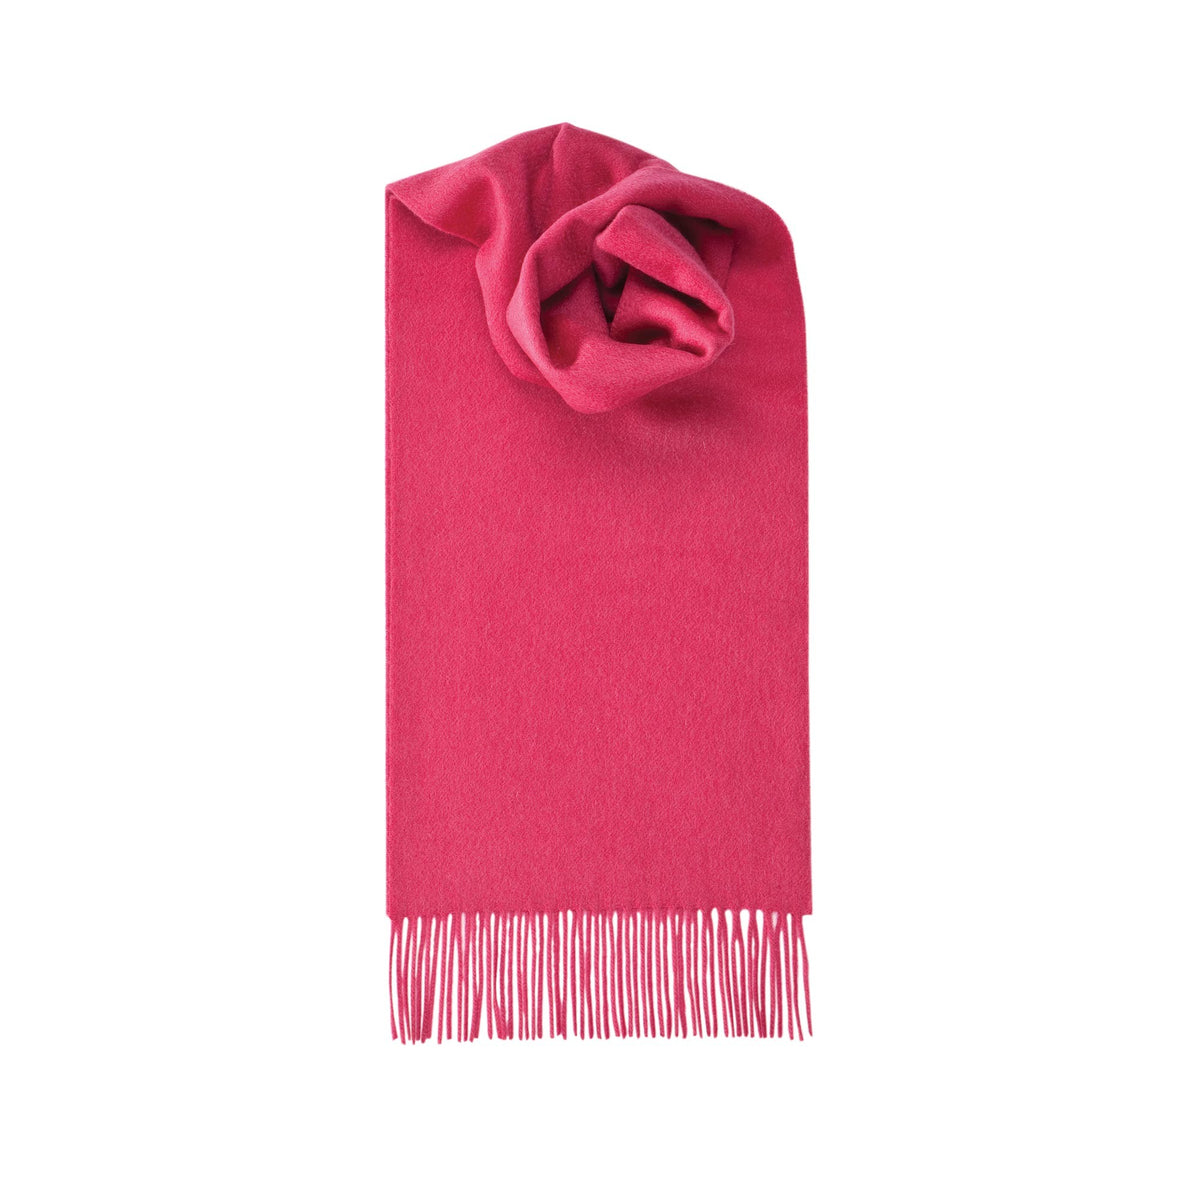 Johnsons of Elgin | Hot Pink Cashmere Scarf | buy at The Cashmere Choice | London